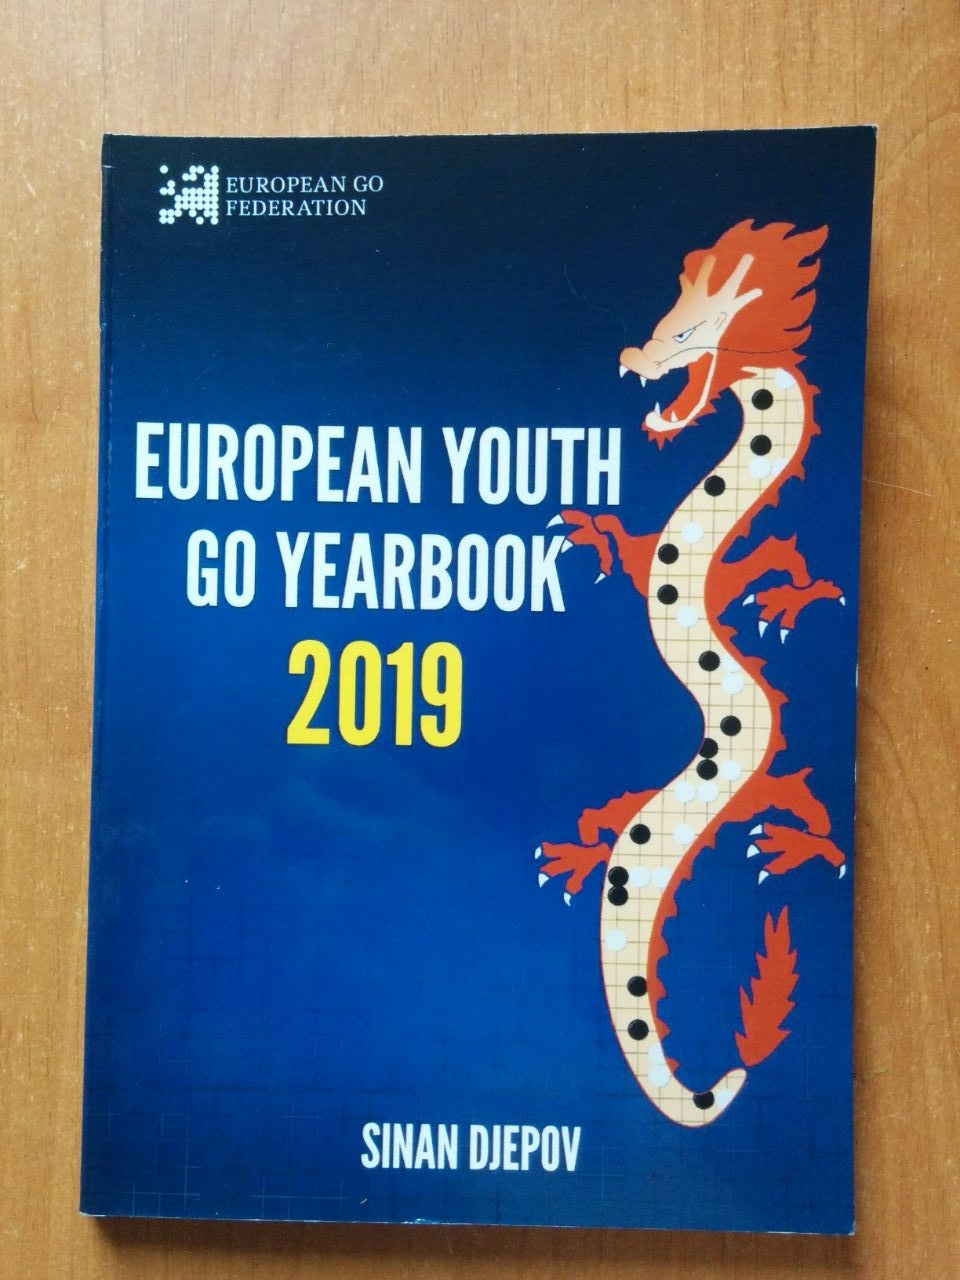 European Youth Go Yearbook 2019